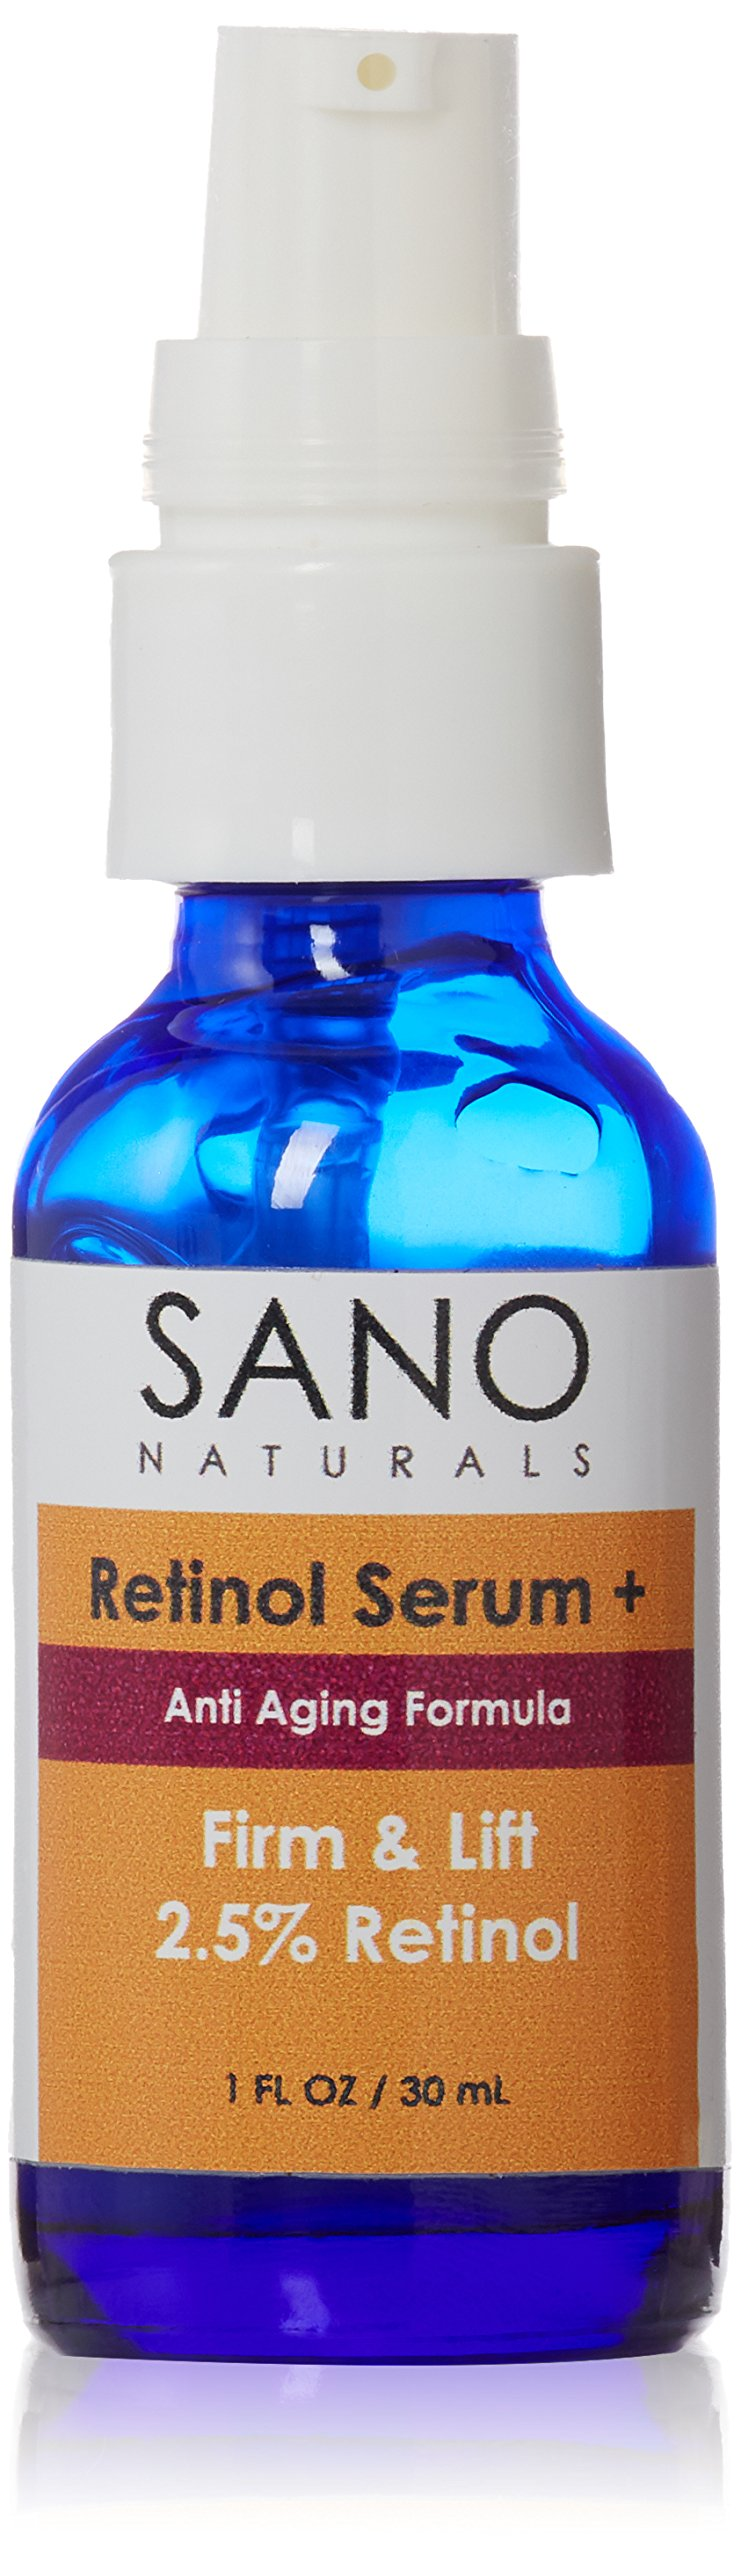 Retinol Serum With Hyaluronic Acid - Firming, Anti Aging, Anti Wrinkle Face Serum Helps Pores and Even Skin Tone - Organic, Use Day or Night.